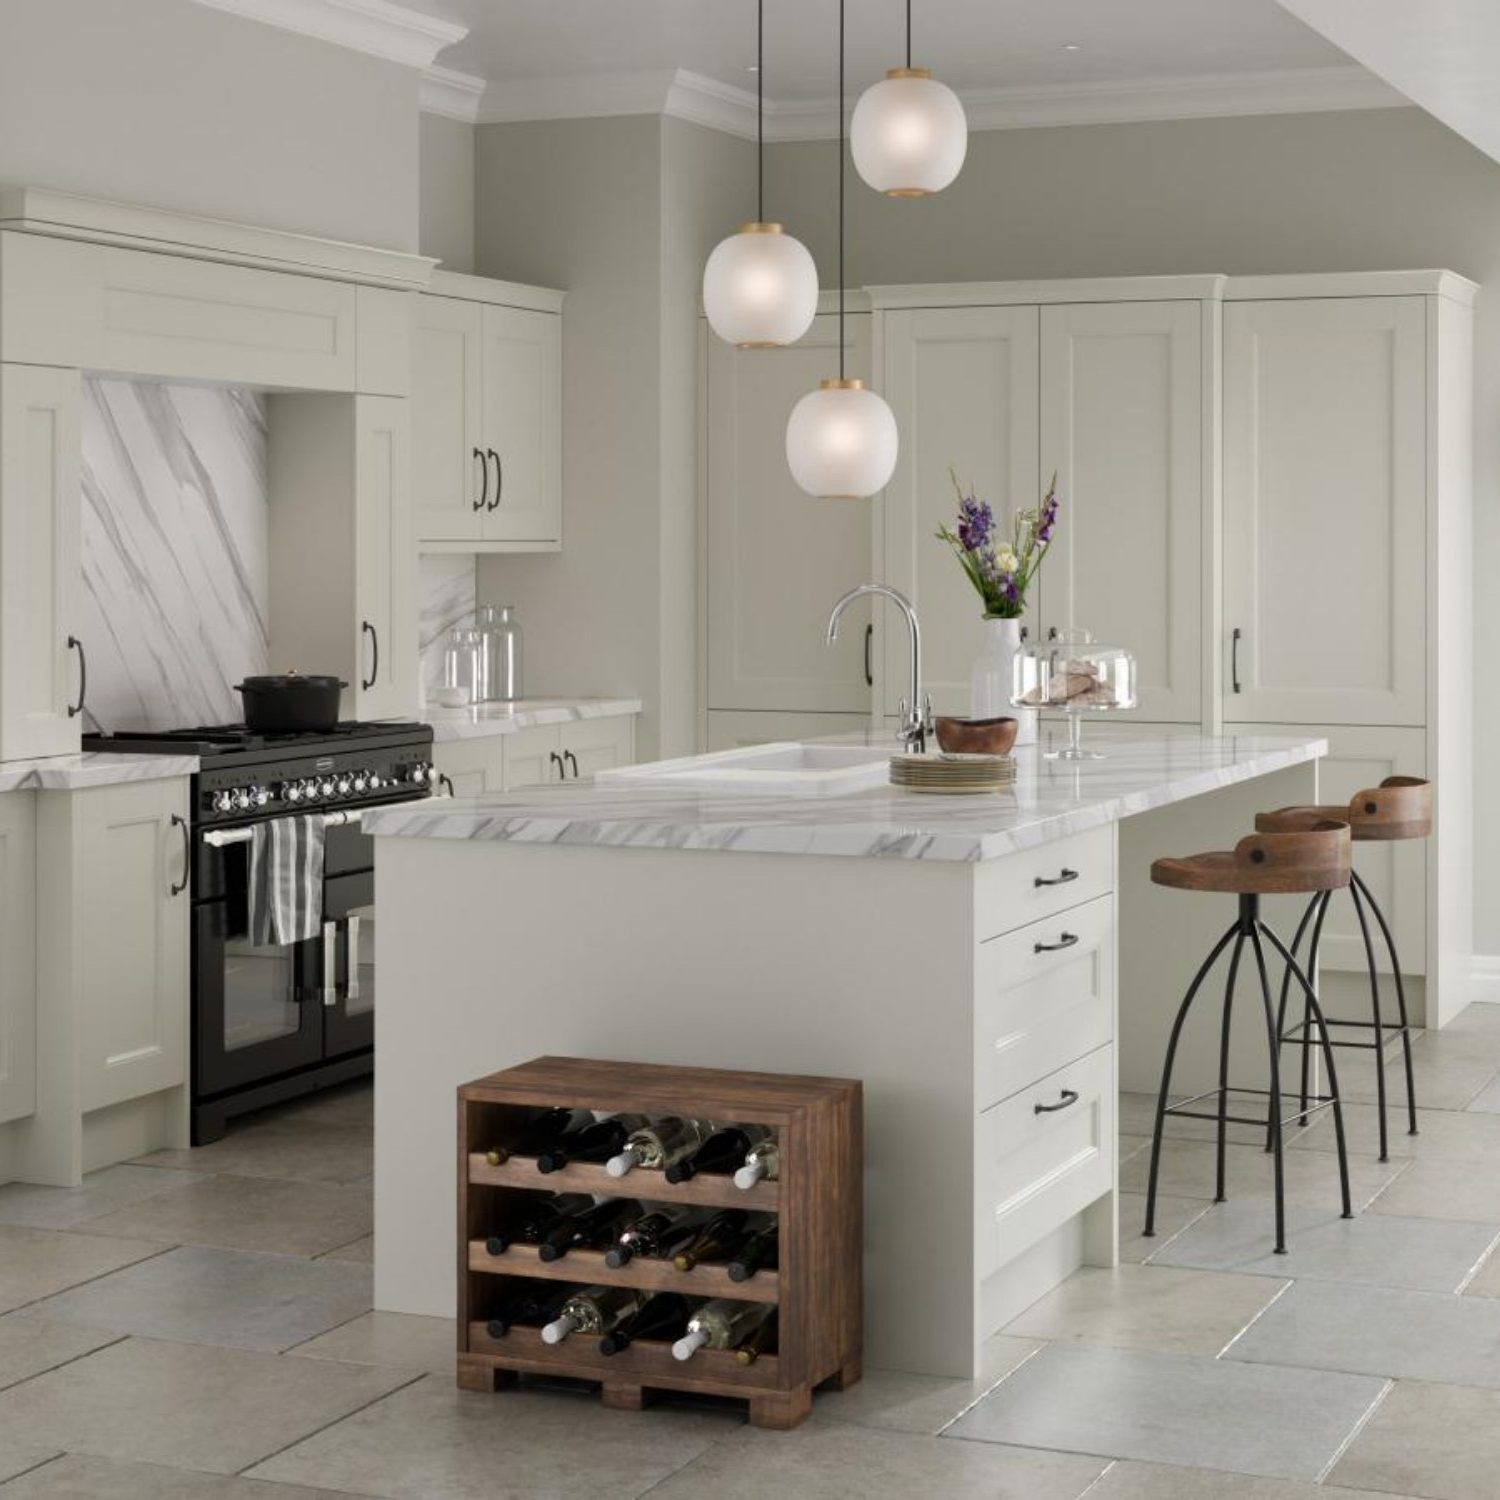 luxury kitchen surrey